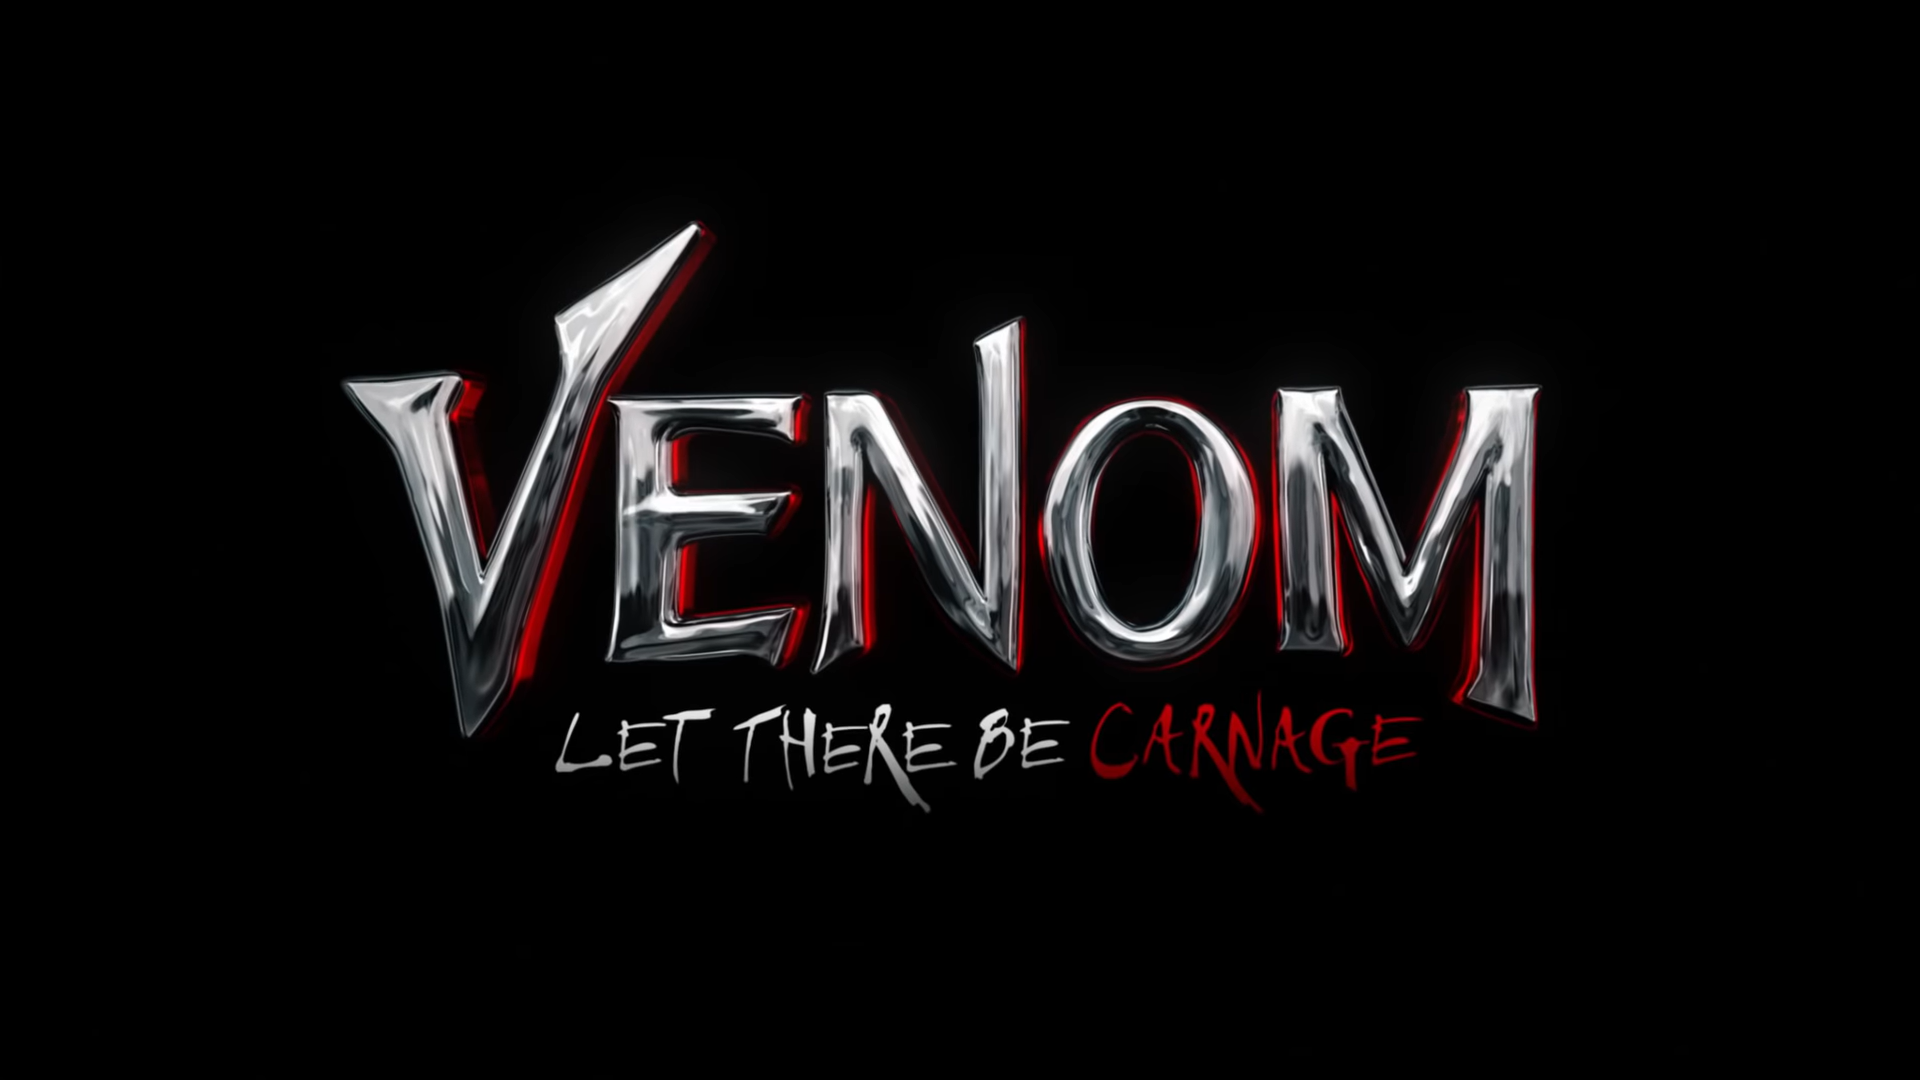 Venom let there be Carnage premieres 2021